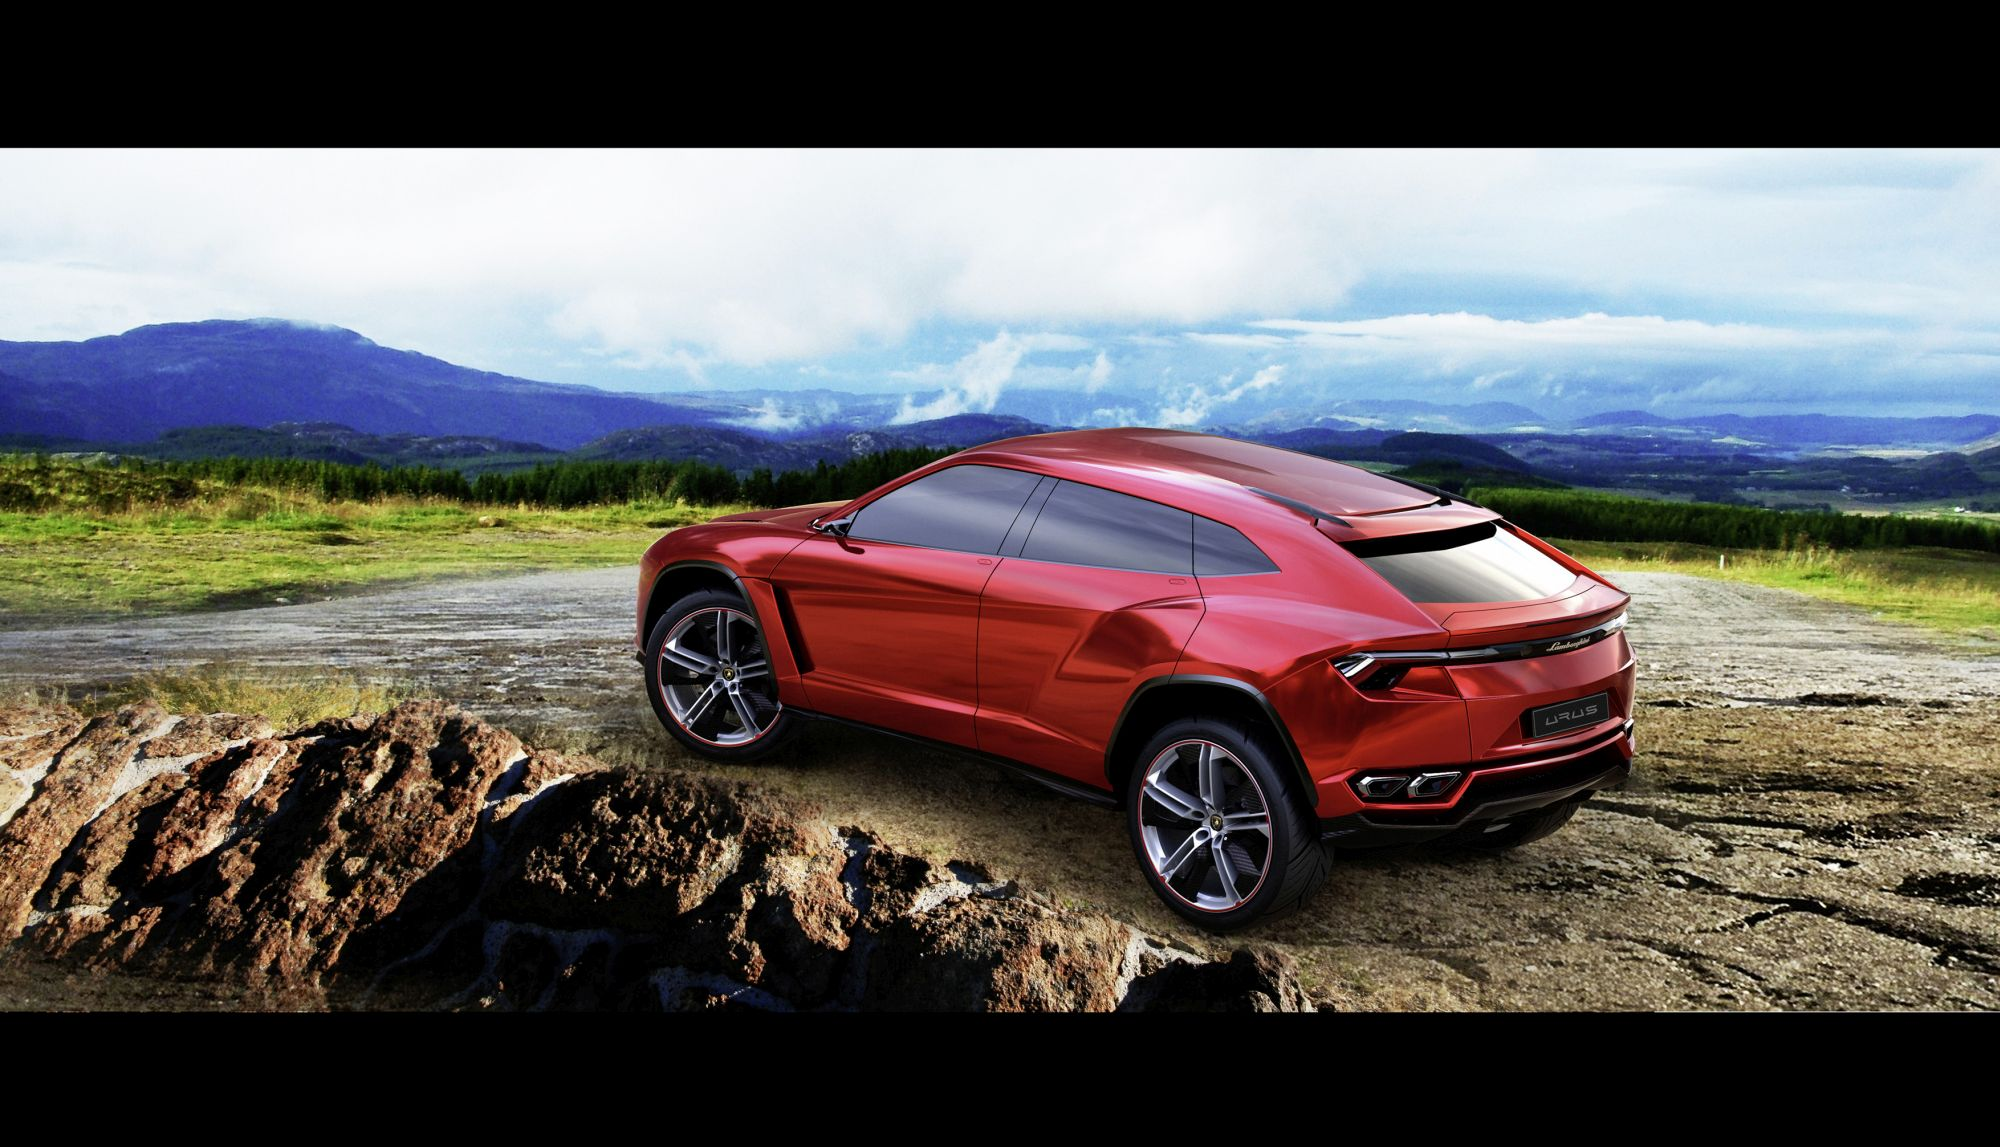 Lamborghini launches luxury SUV